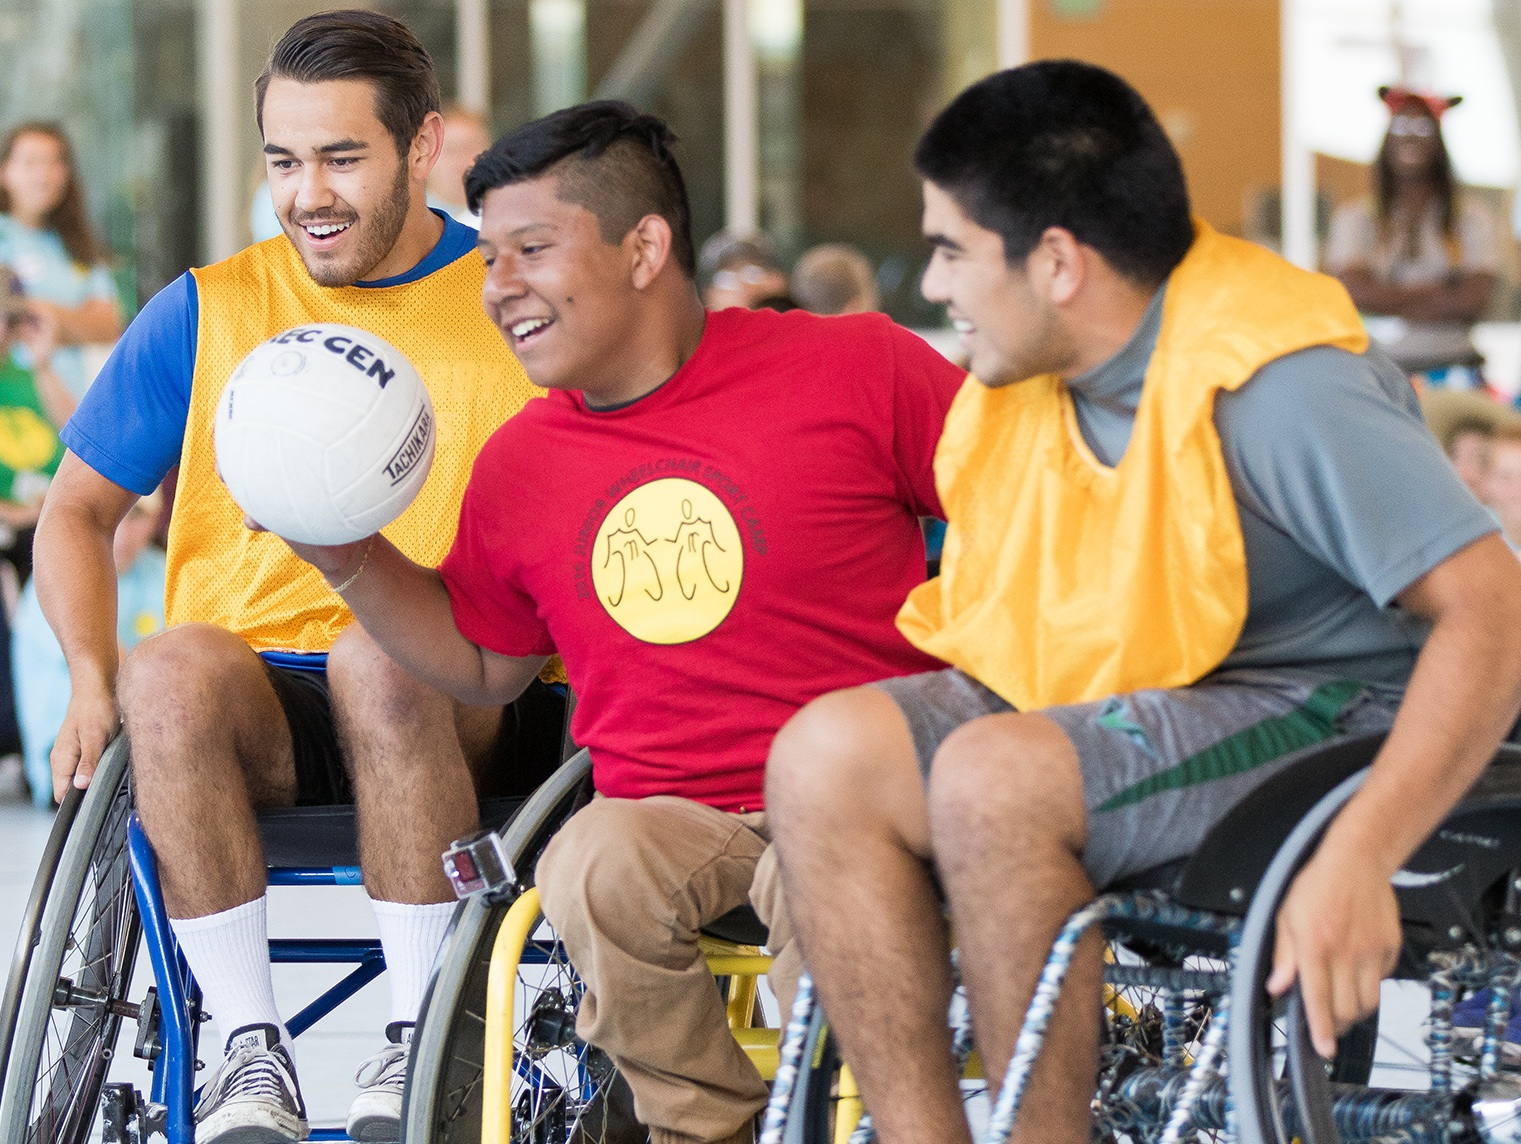 Jesus Alverado, center, of the Junior Wheelchair Camp team, and UCSB rugby players Anthony Singh, left, and David Cota are all smiles as they play in a wheelchair rugby game at the Rec Center.